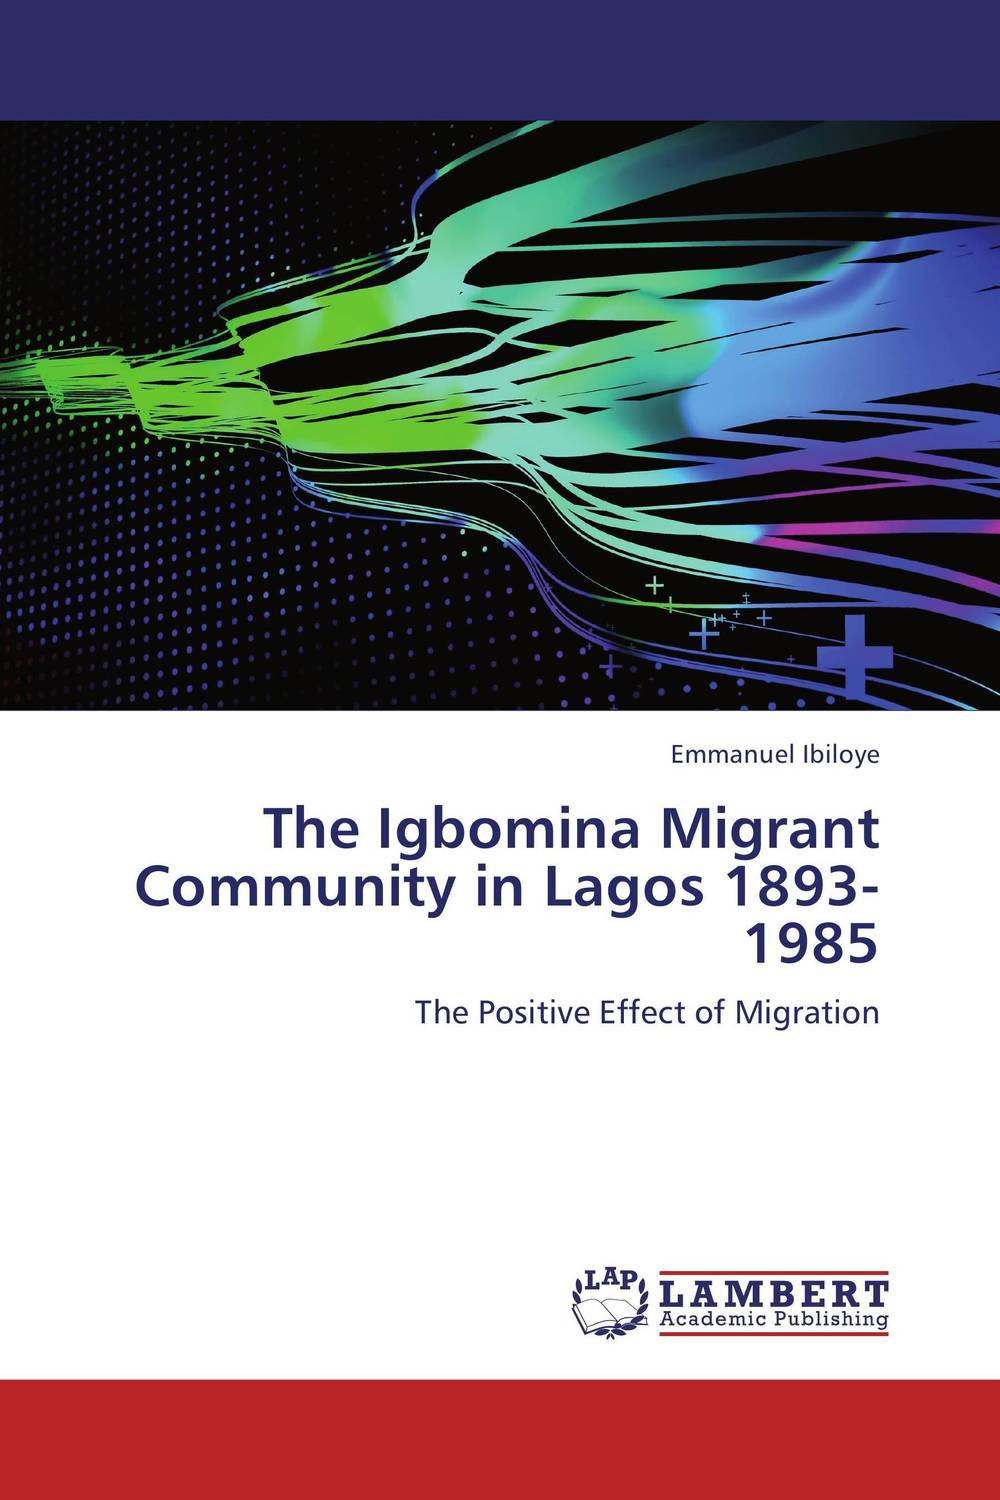 The Igbomina Migrant Community in Lagos 1893-1985